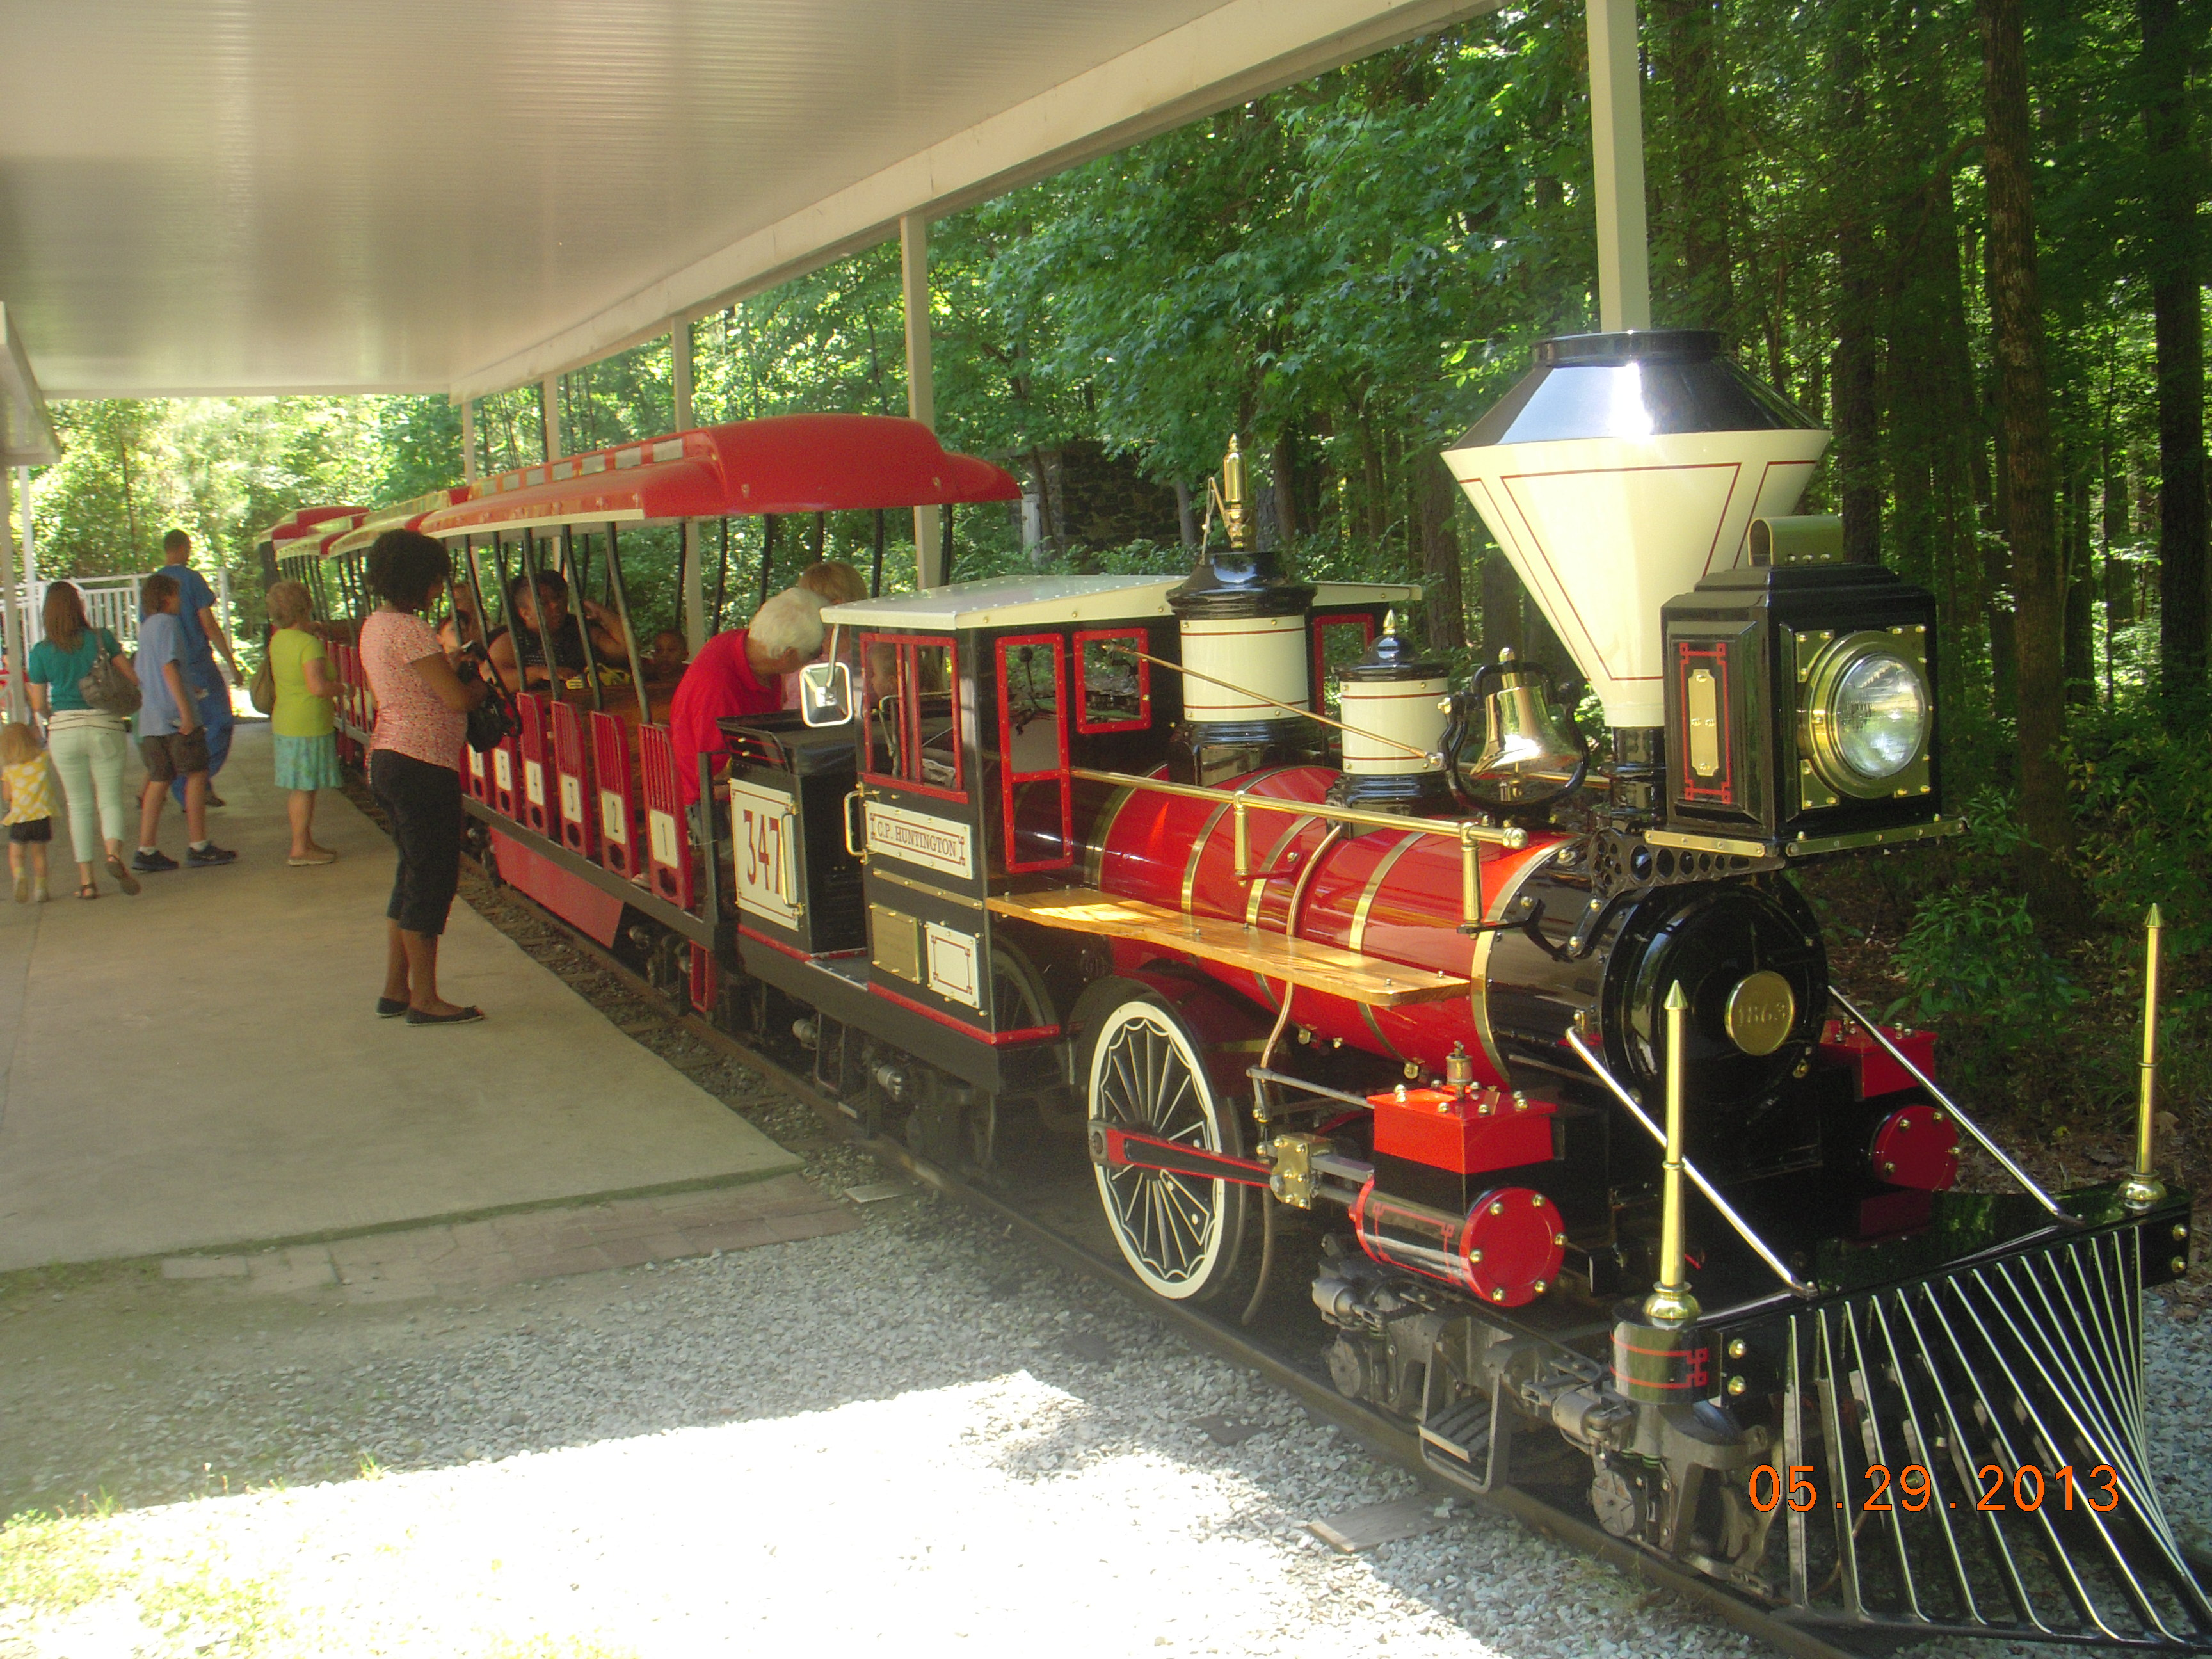 There is also a mini train that visitors can ride